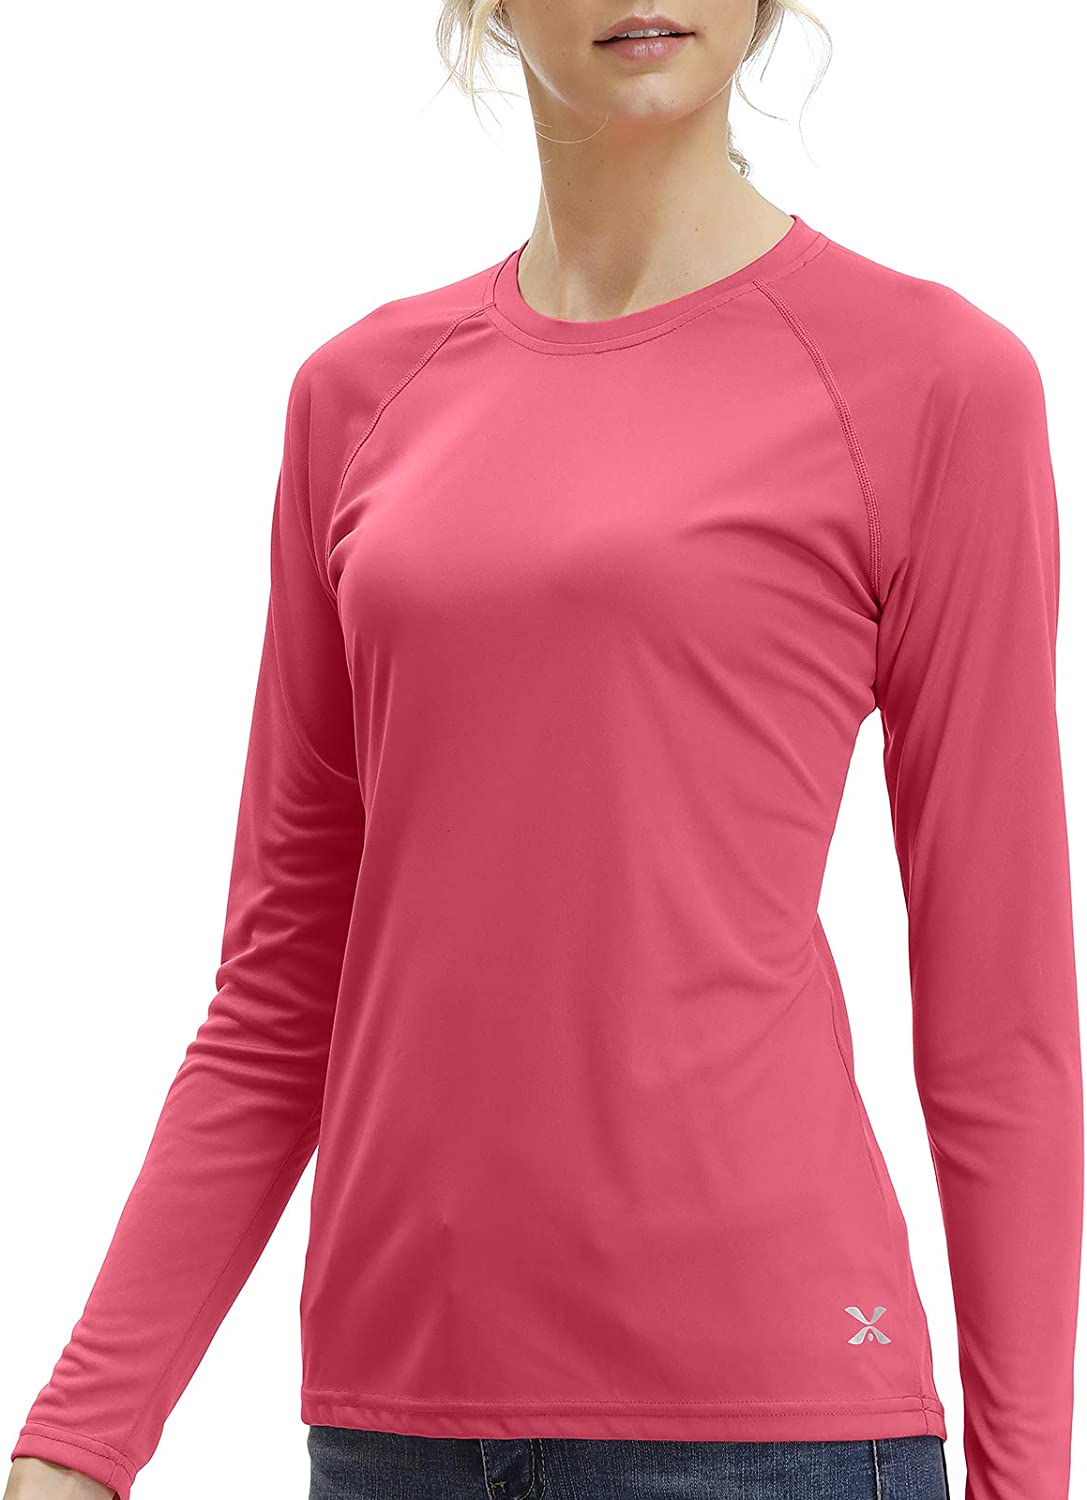 TIHEEN Women's UPF 50+ Sun Shirts Workout Long Protection Sleeve Popularity Sales results No. 1